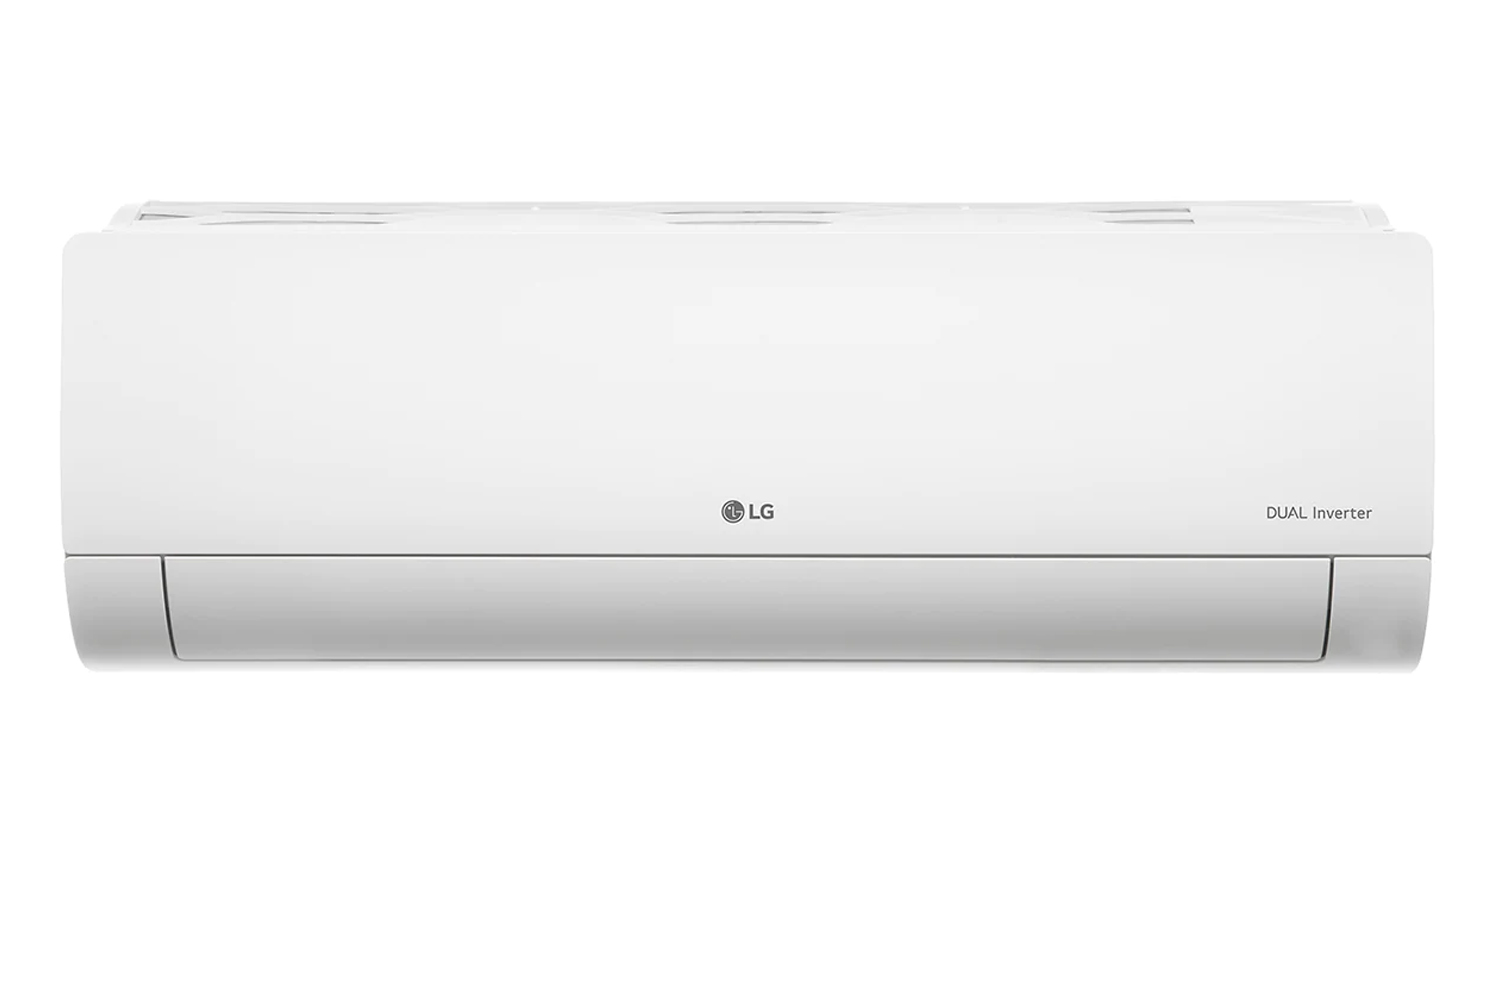 Best Selling AC in india 2021